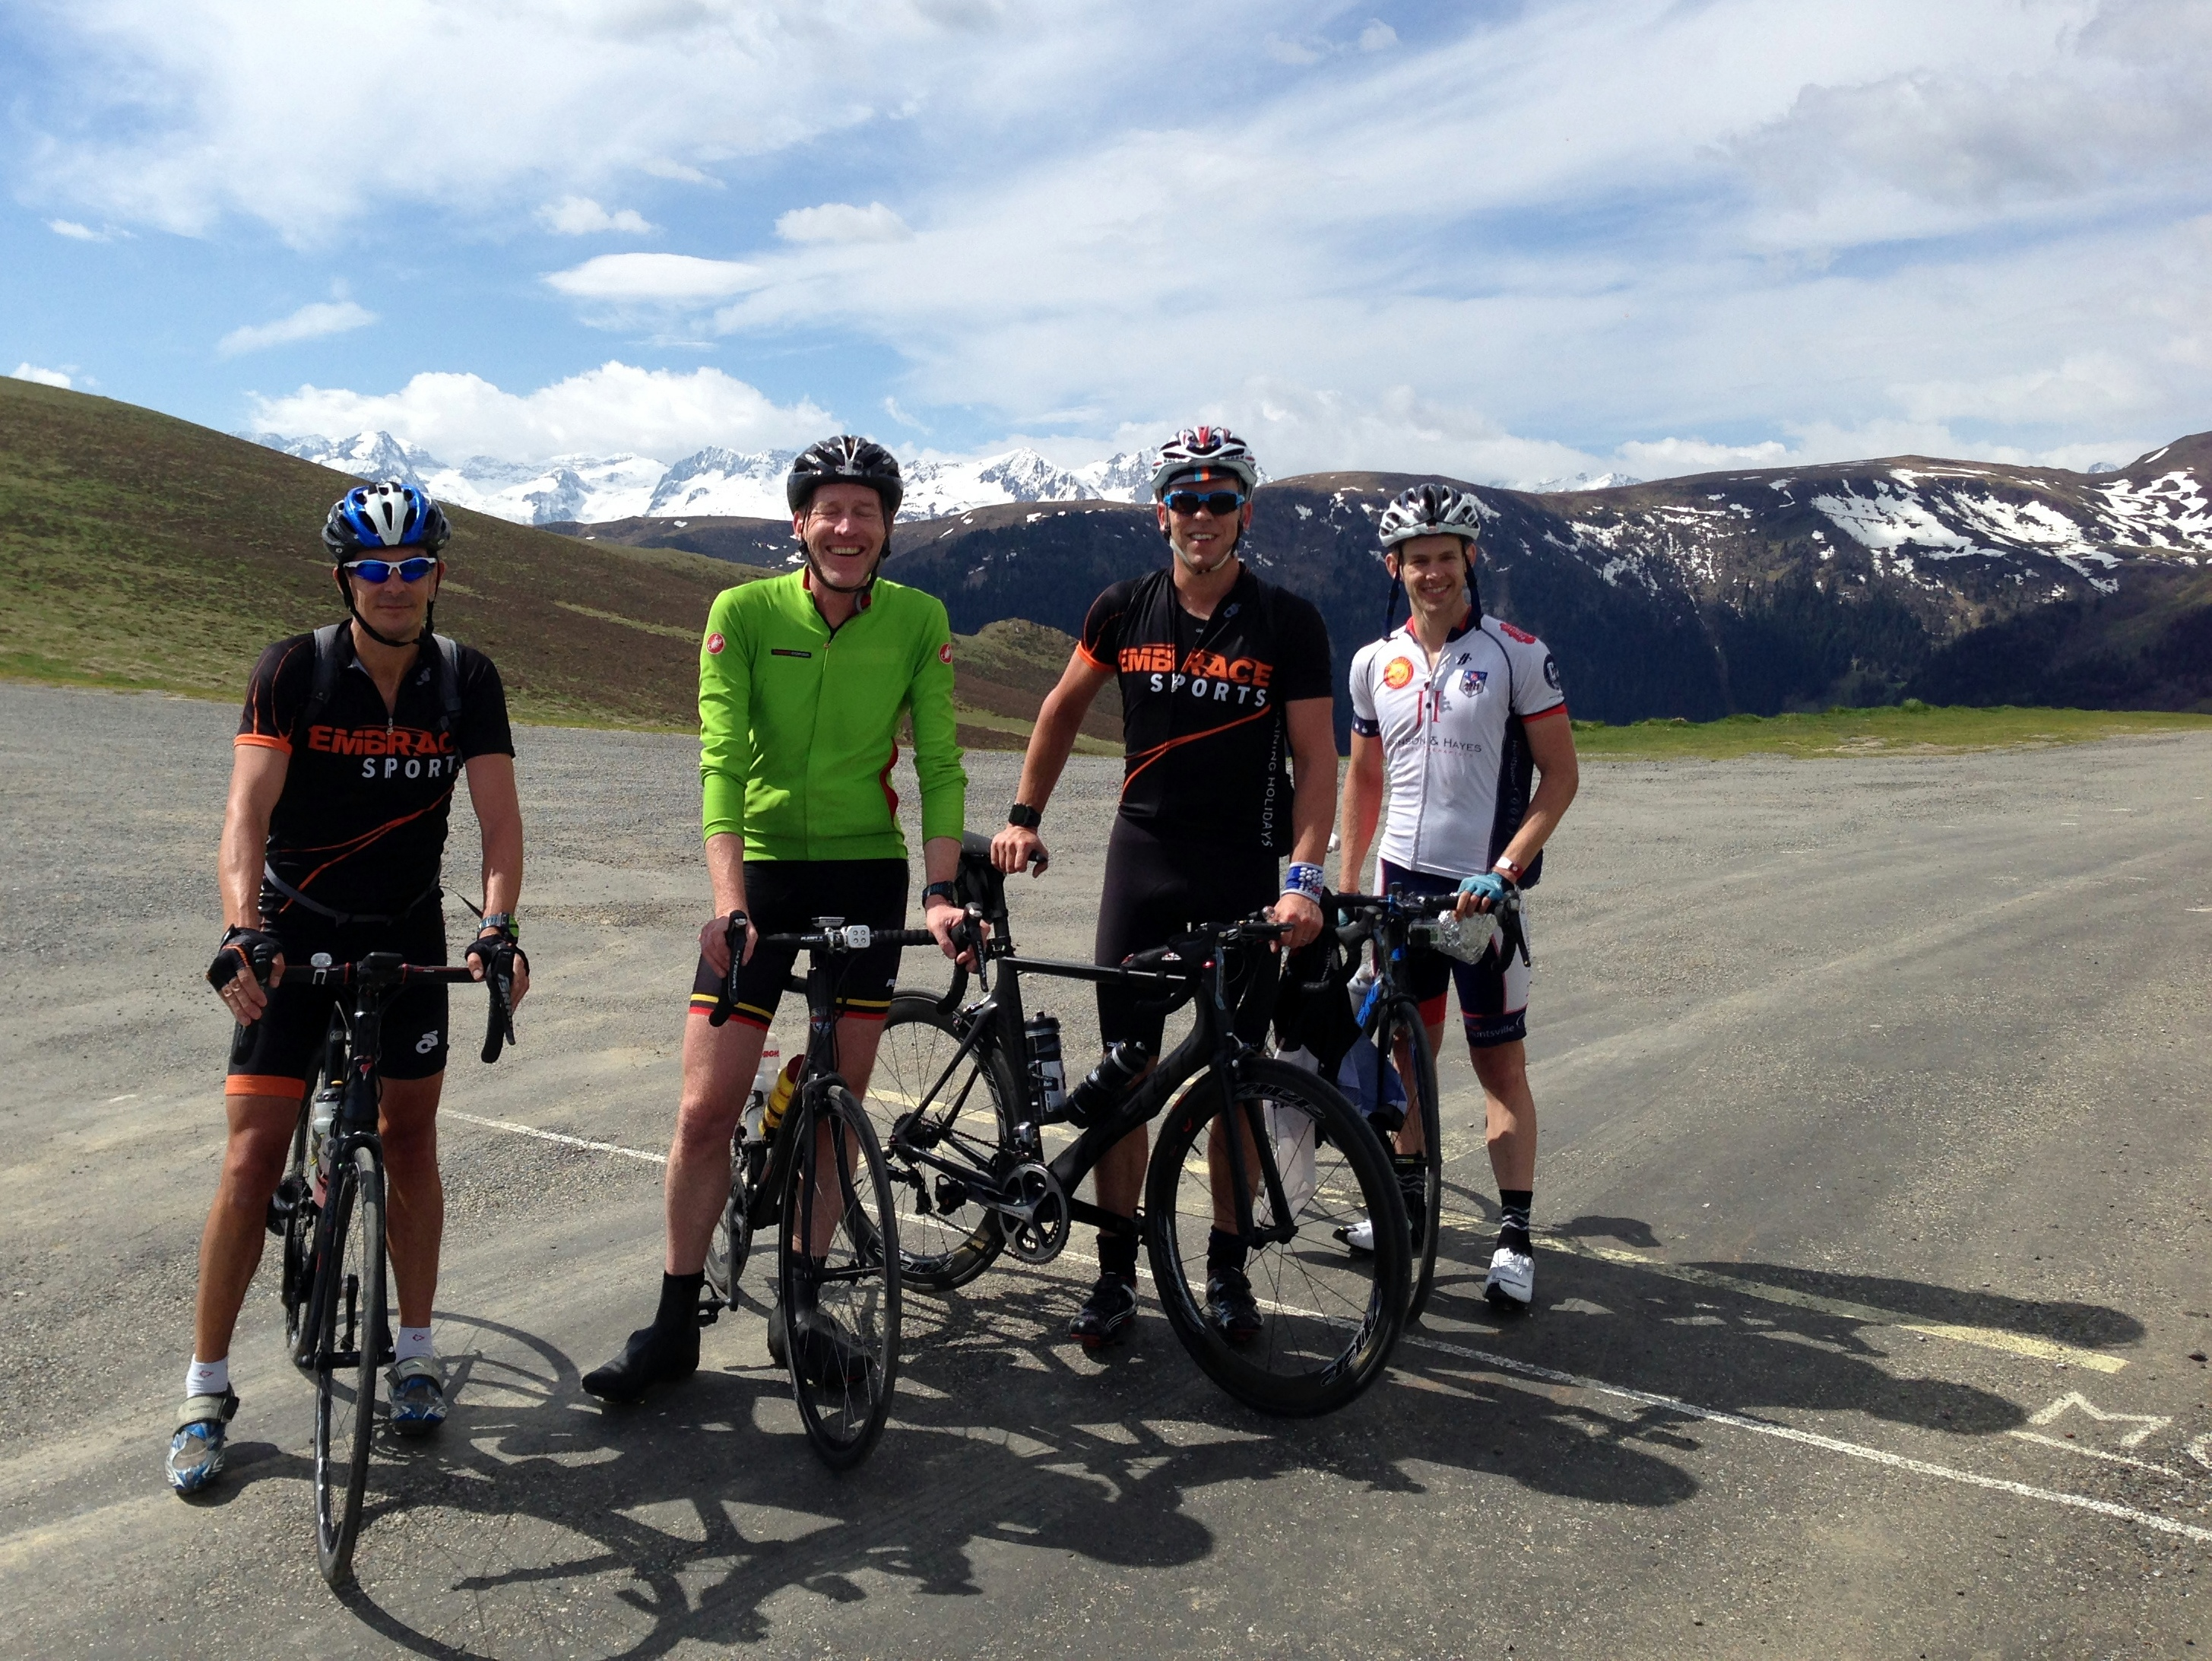 Cycling holiday in the Pyrenees. Richard Brimelow